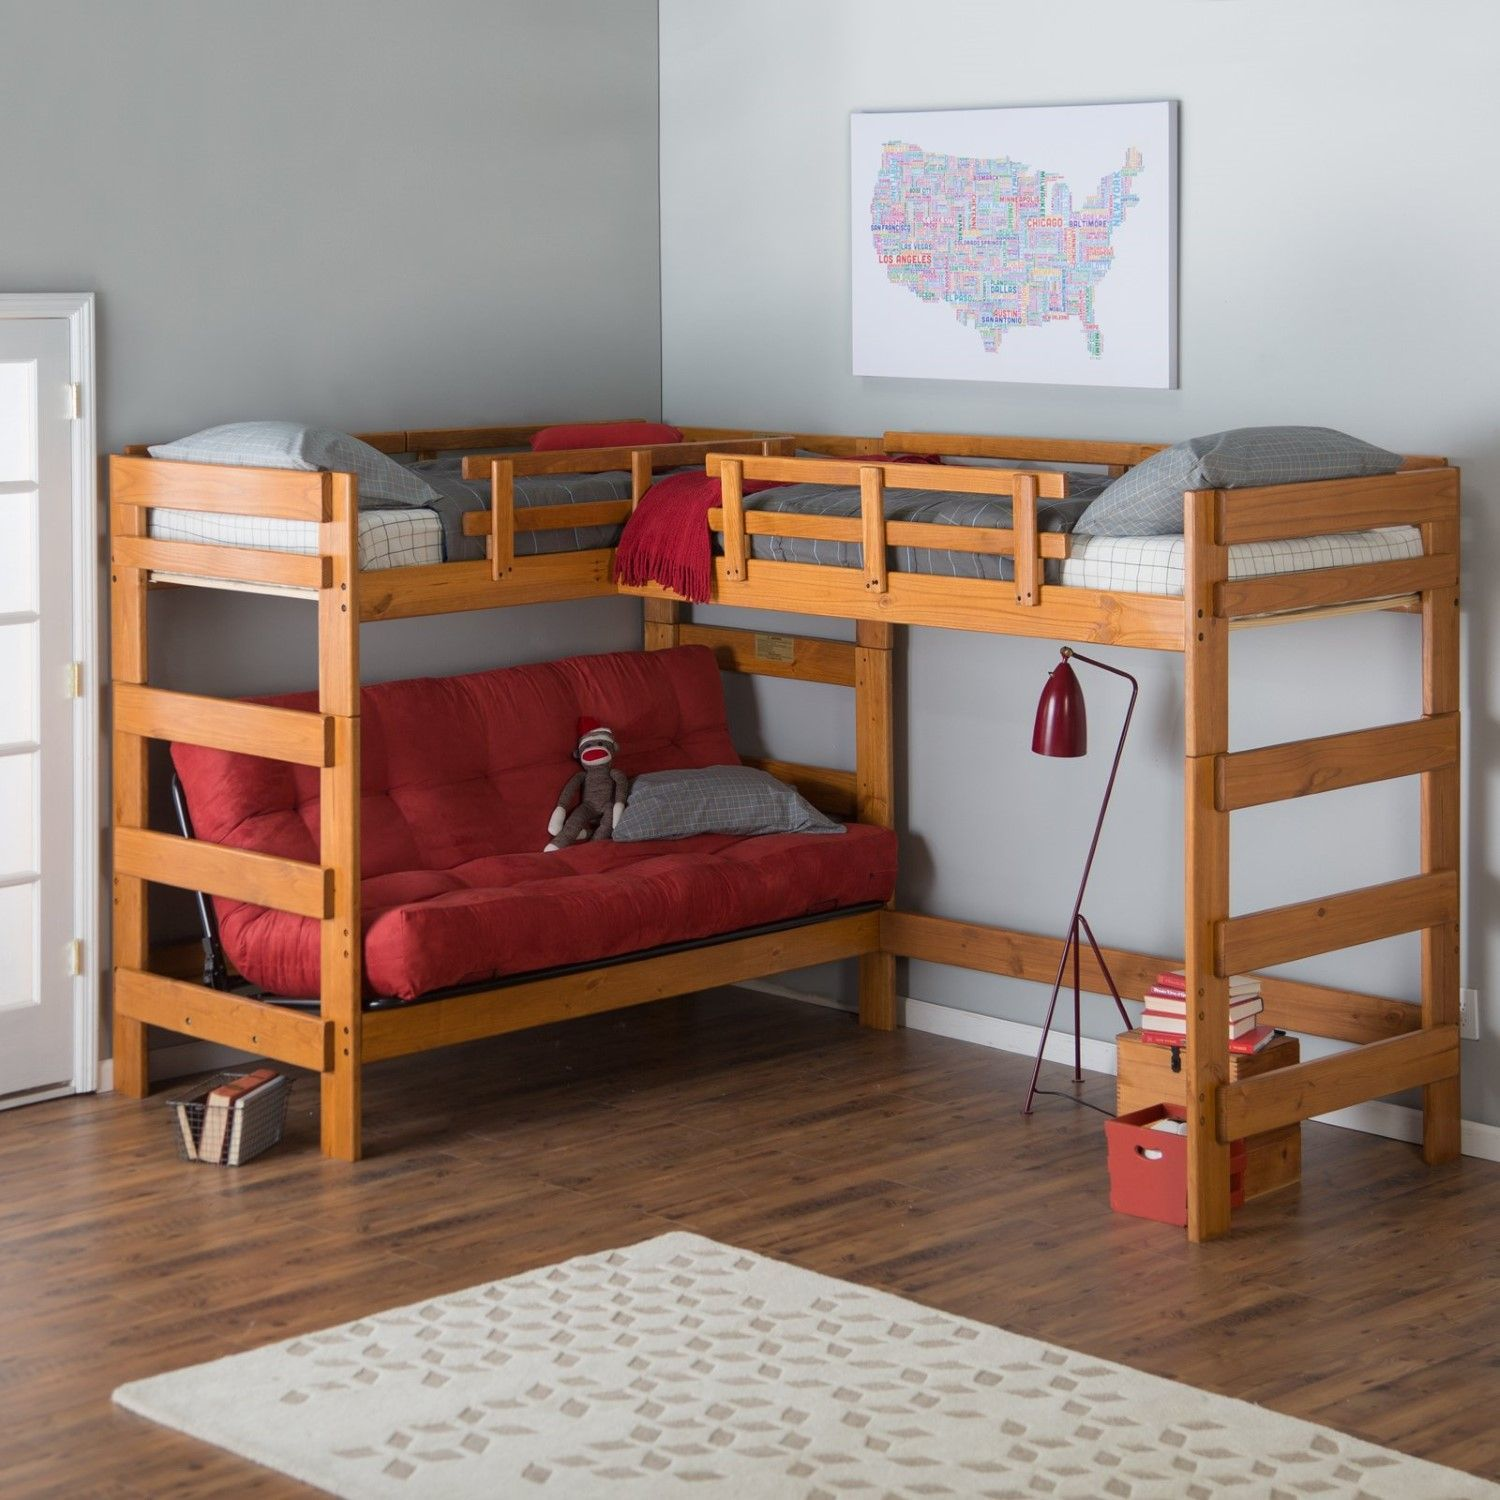 Think Outside The Bed Woodcrest Heartland Futon Bunk With Extra Loft Makes E Where There Once Was None Its Double L Shape Configuration